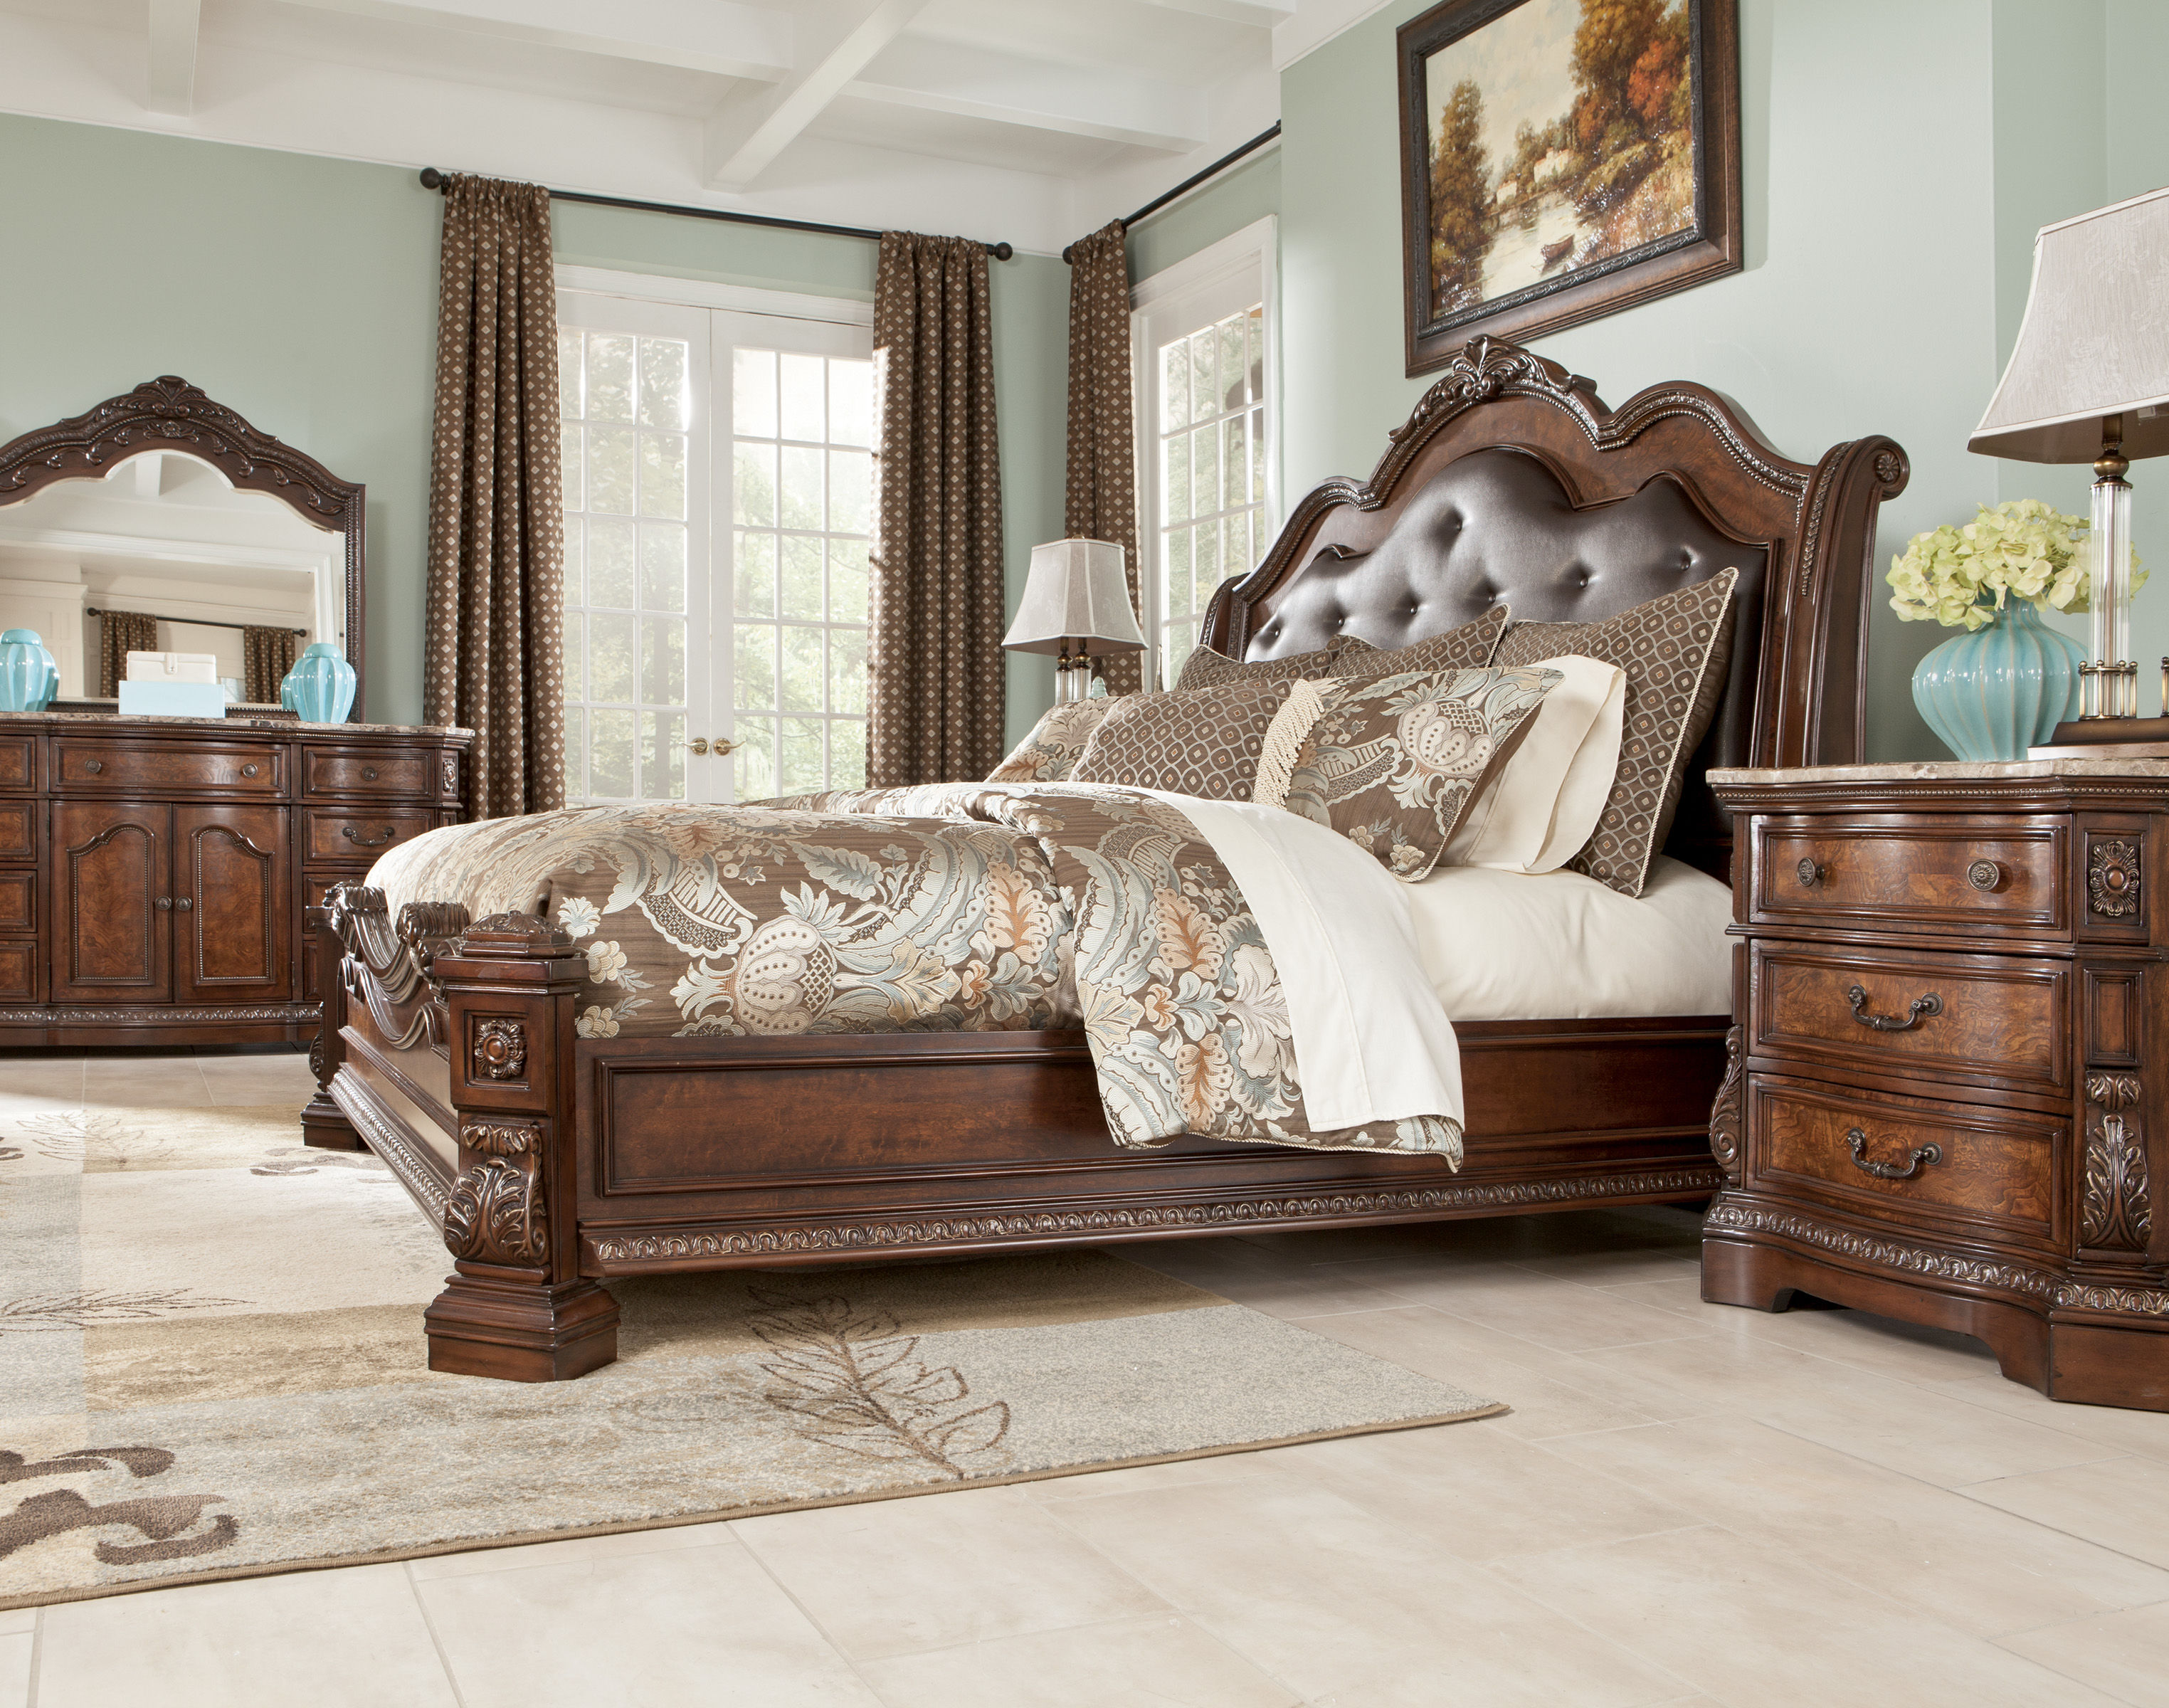 King Poster Bed Part - 49: ... W/King Poster Bed Click To Enlarge Click To Enlarge ...